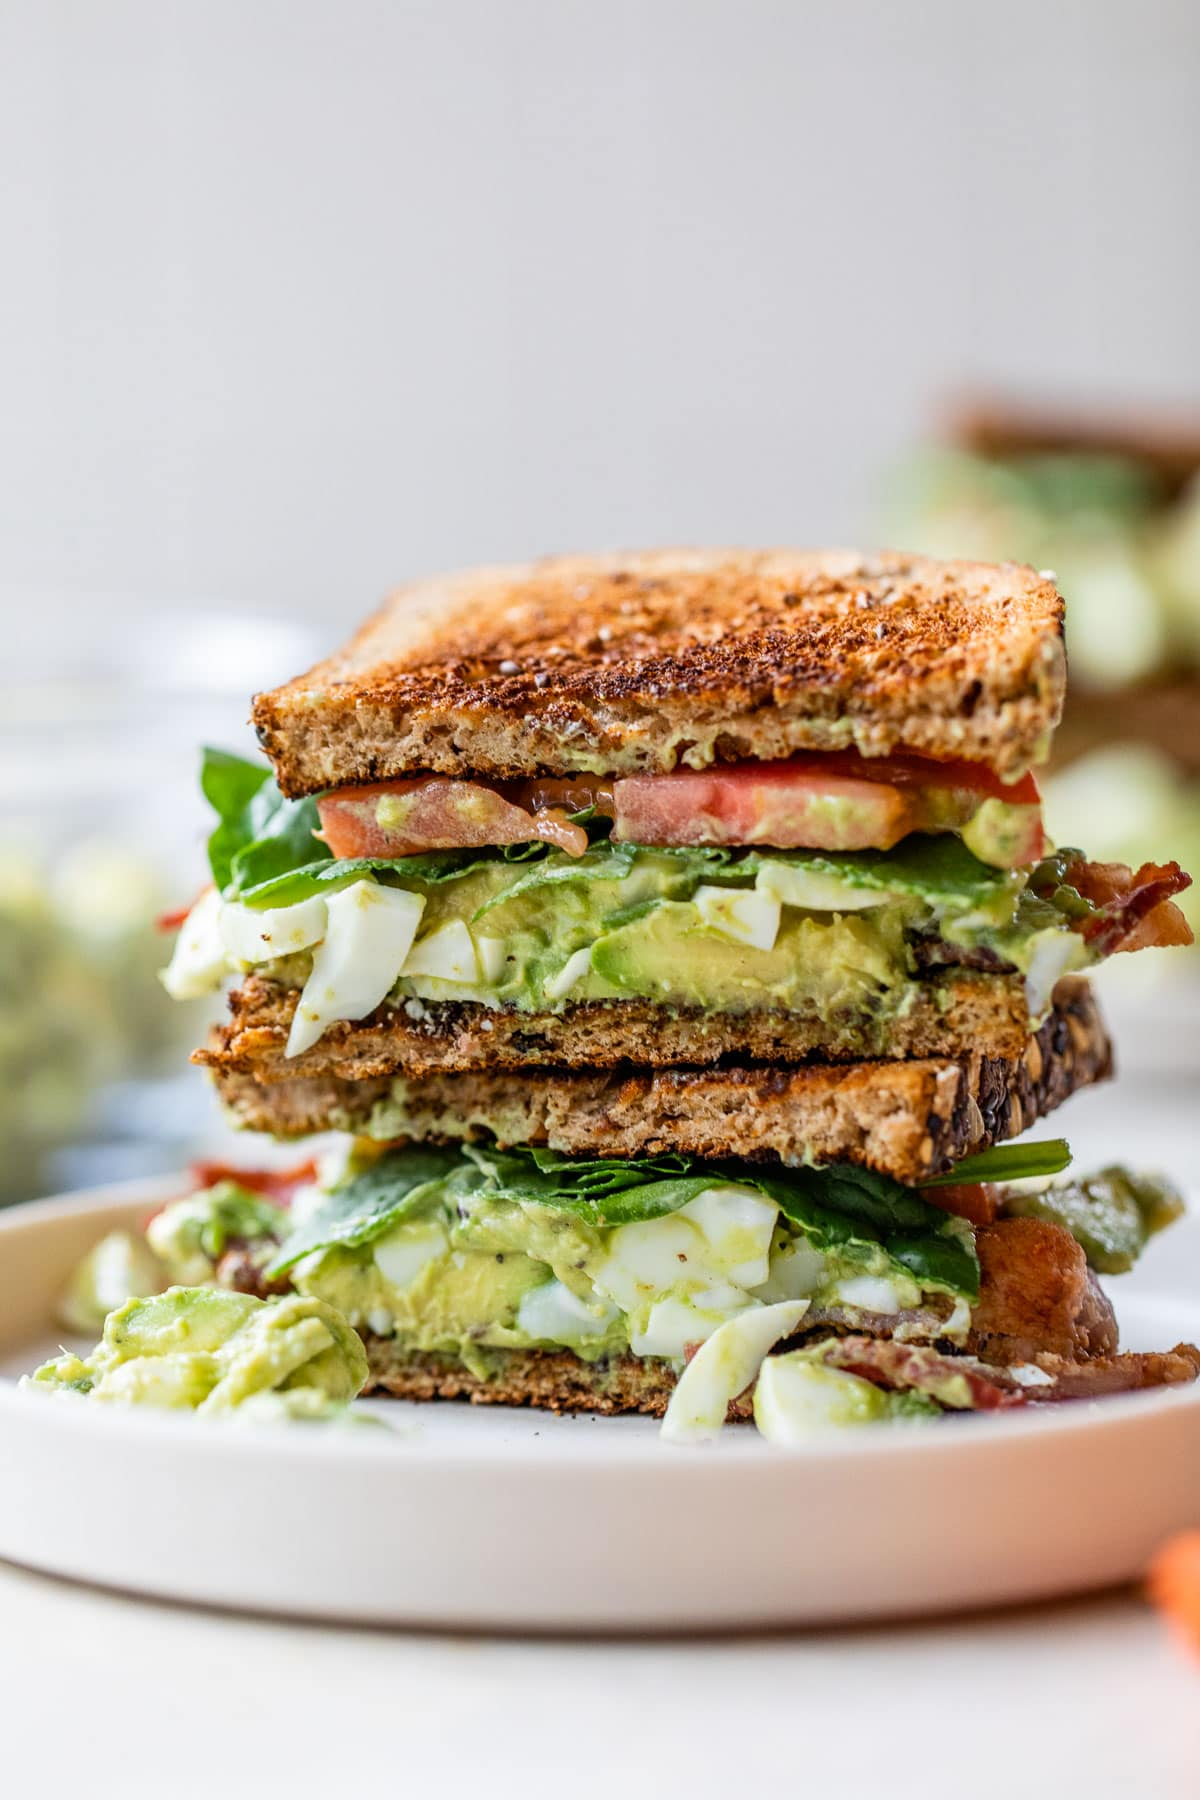 Avocado Egg Salad Sandwiches with Bacon. Use avocado instead of mayo for a healthy egg salad that's loaded with fresh flavor!